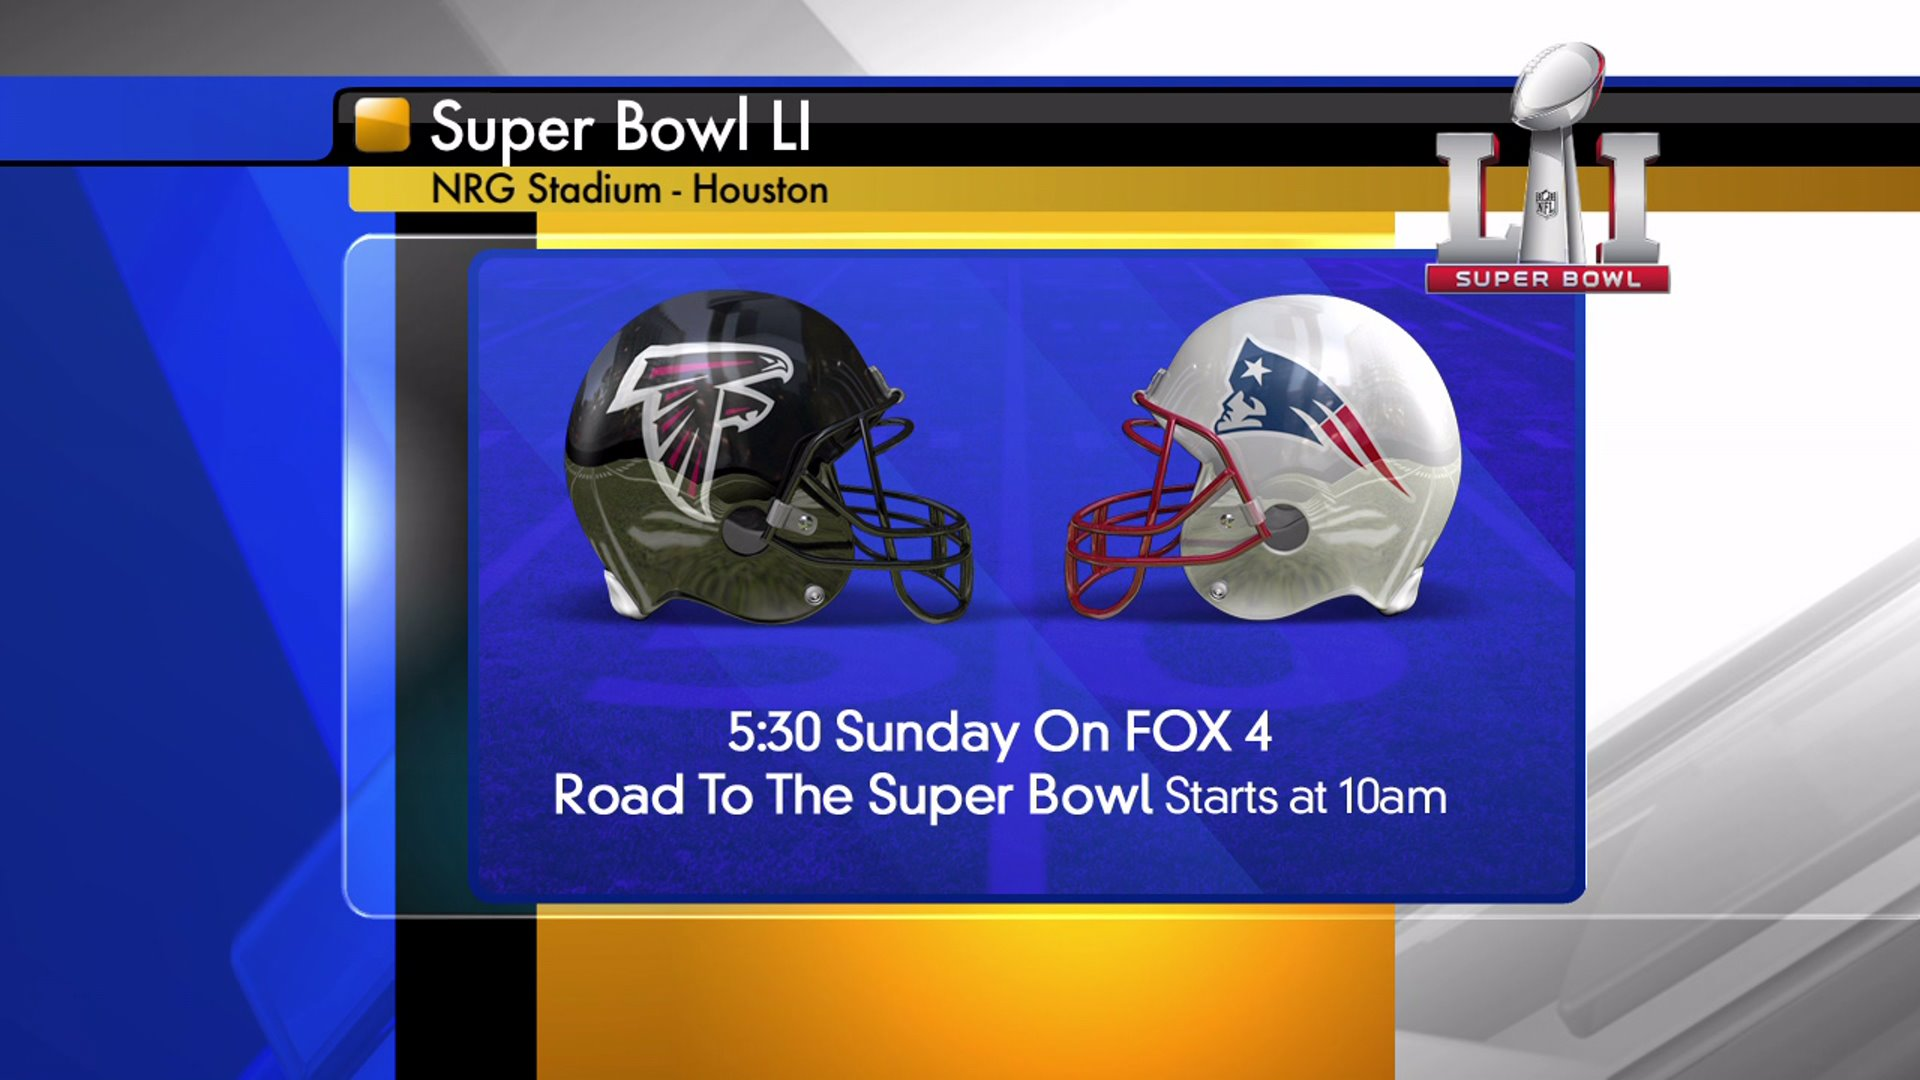 Watch the Super Bowl on FOX 4.